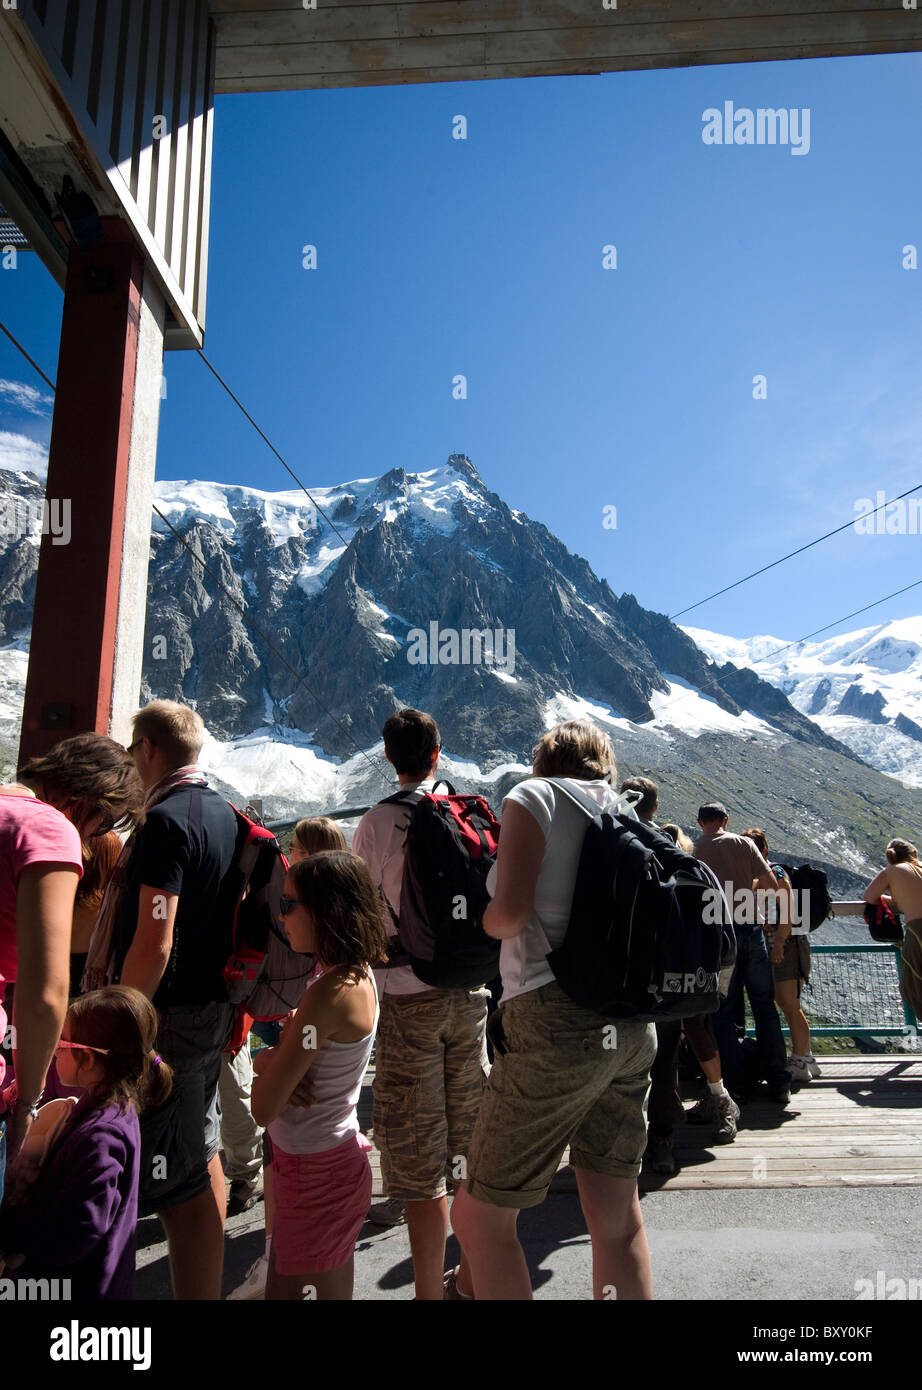 Tourists queue for the cable car to Auguille du Midi - the peak in the distance, Haute Savoie, Alps, France - Stock Image